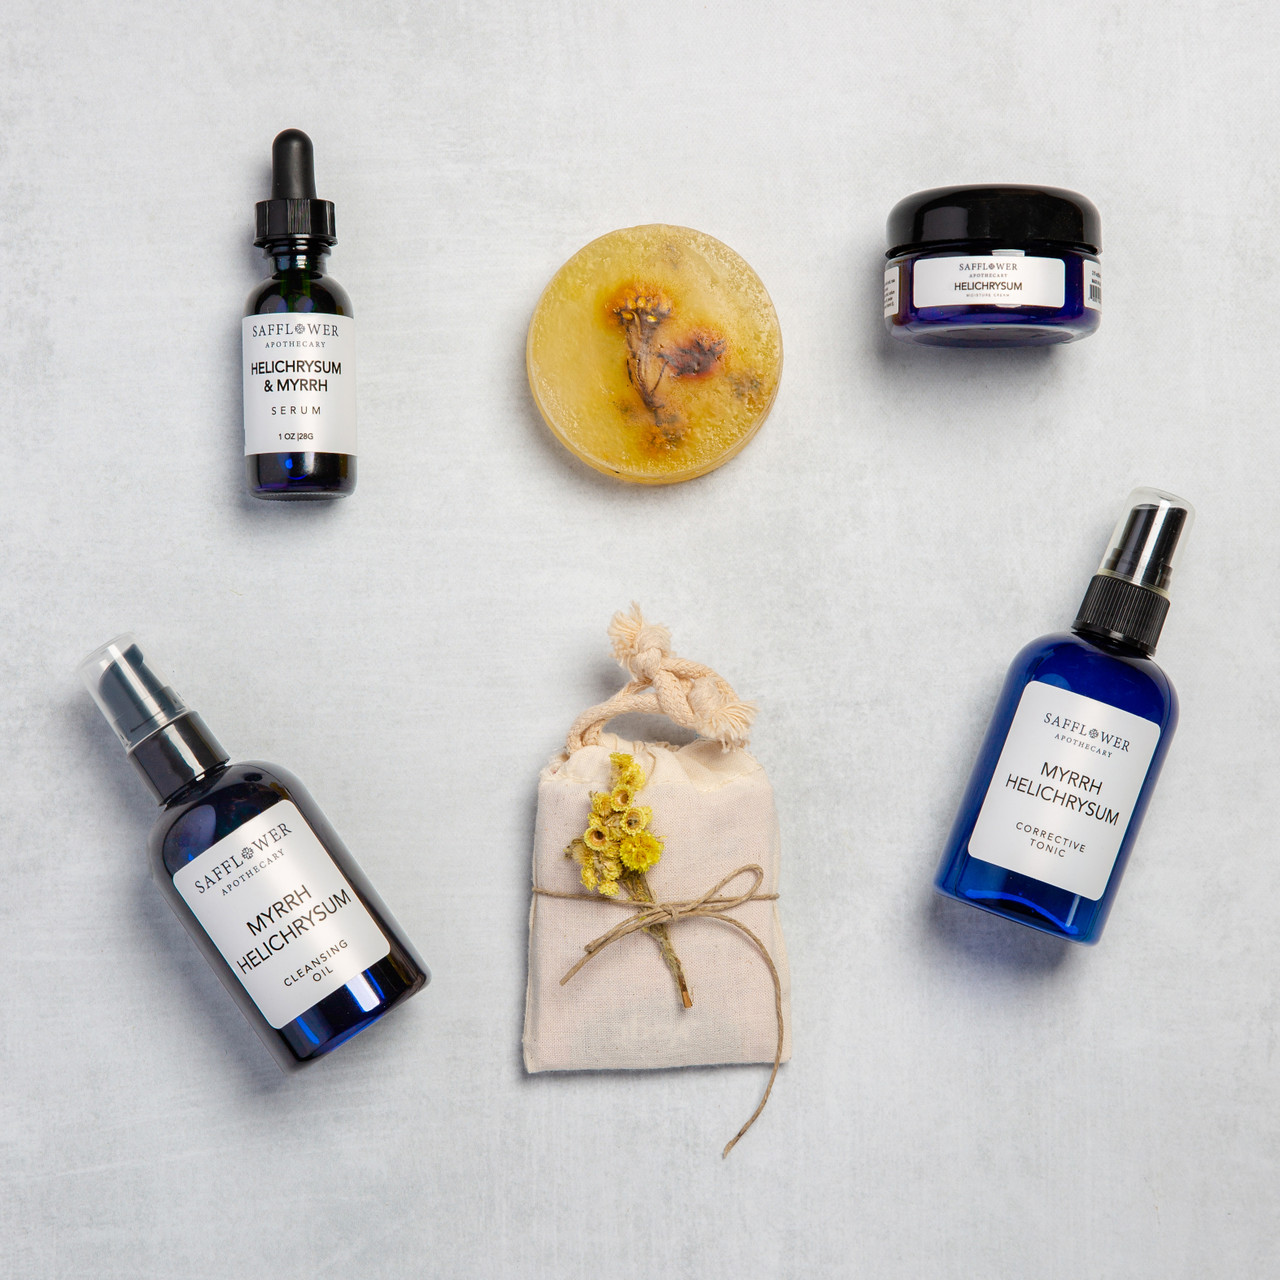 Helichrysum Glowing Skin Luxury Gift Box